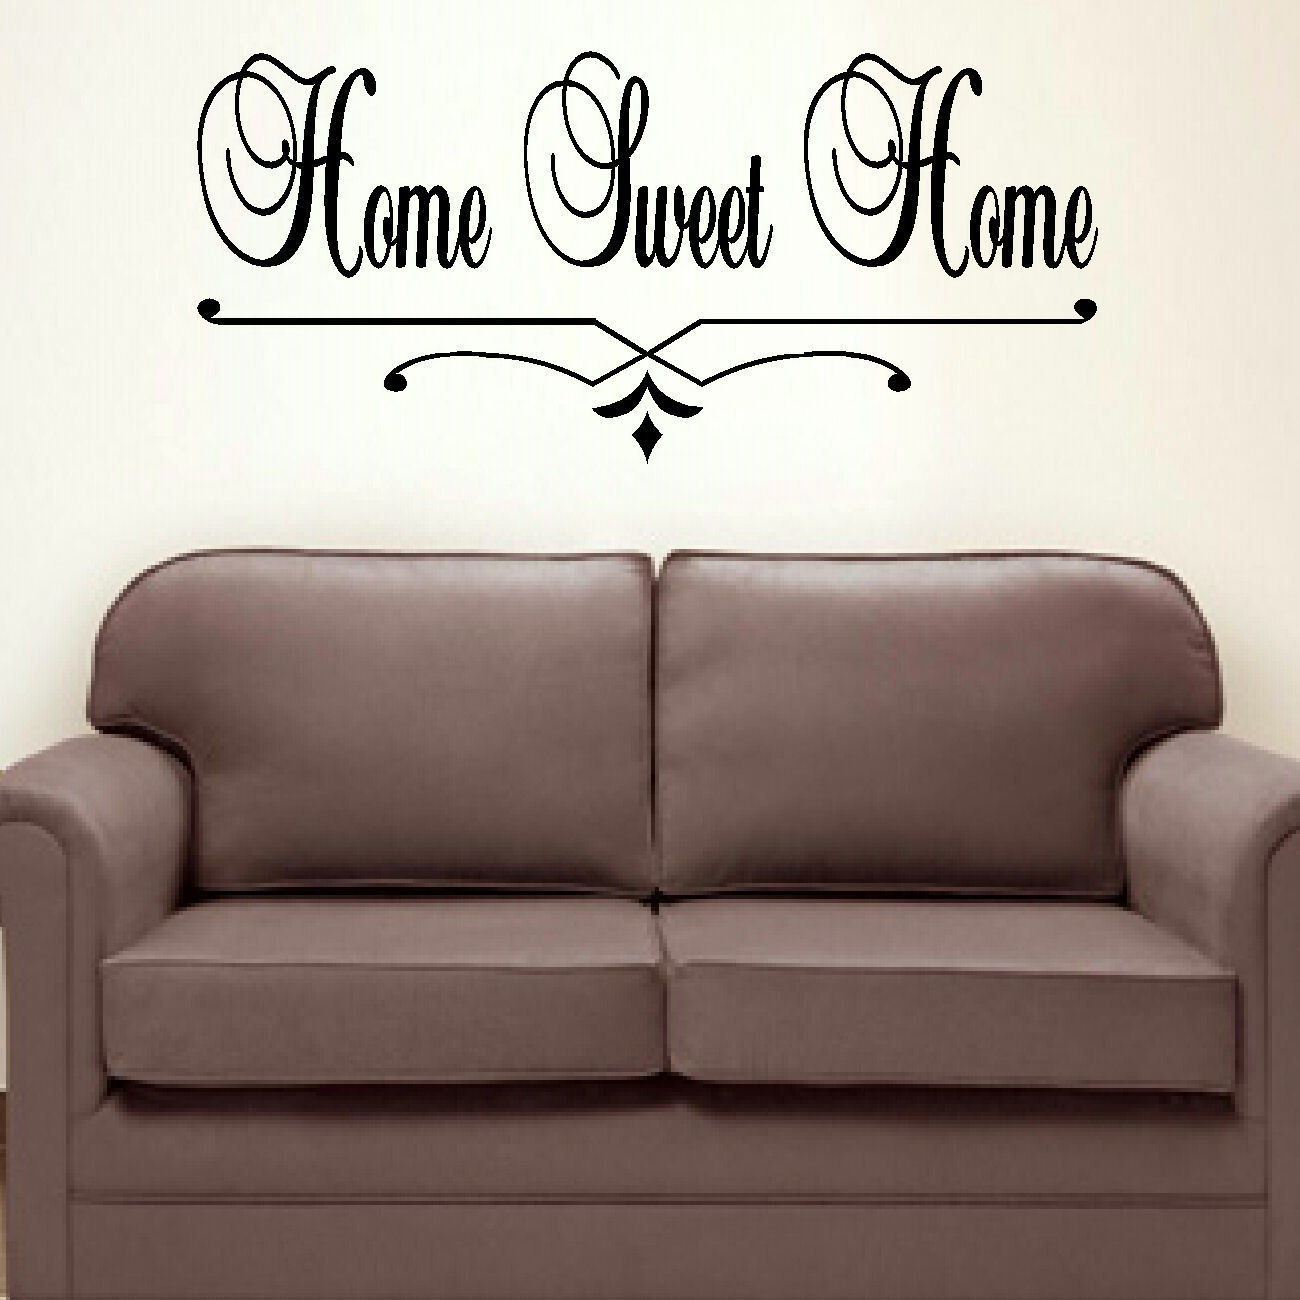 Wall Art Decor Vinyl : Large bedroom quote home sweet wall art sticker